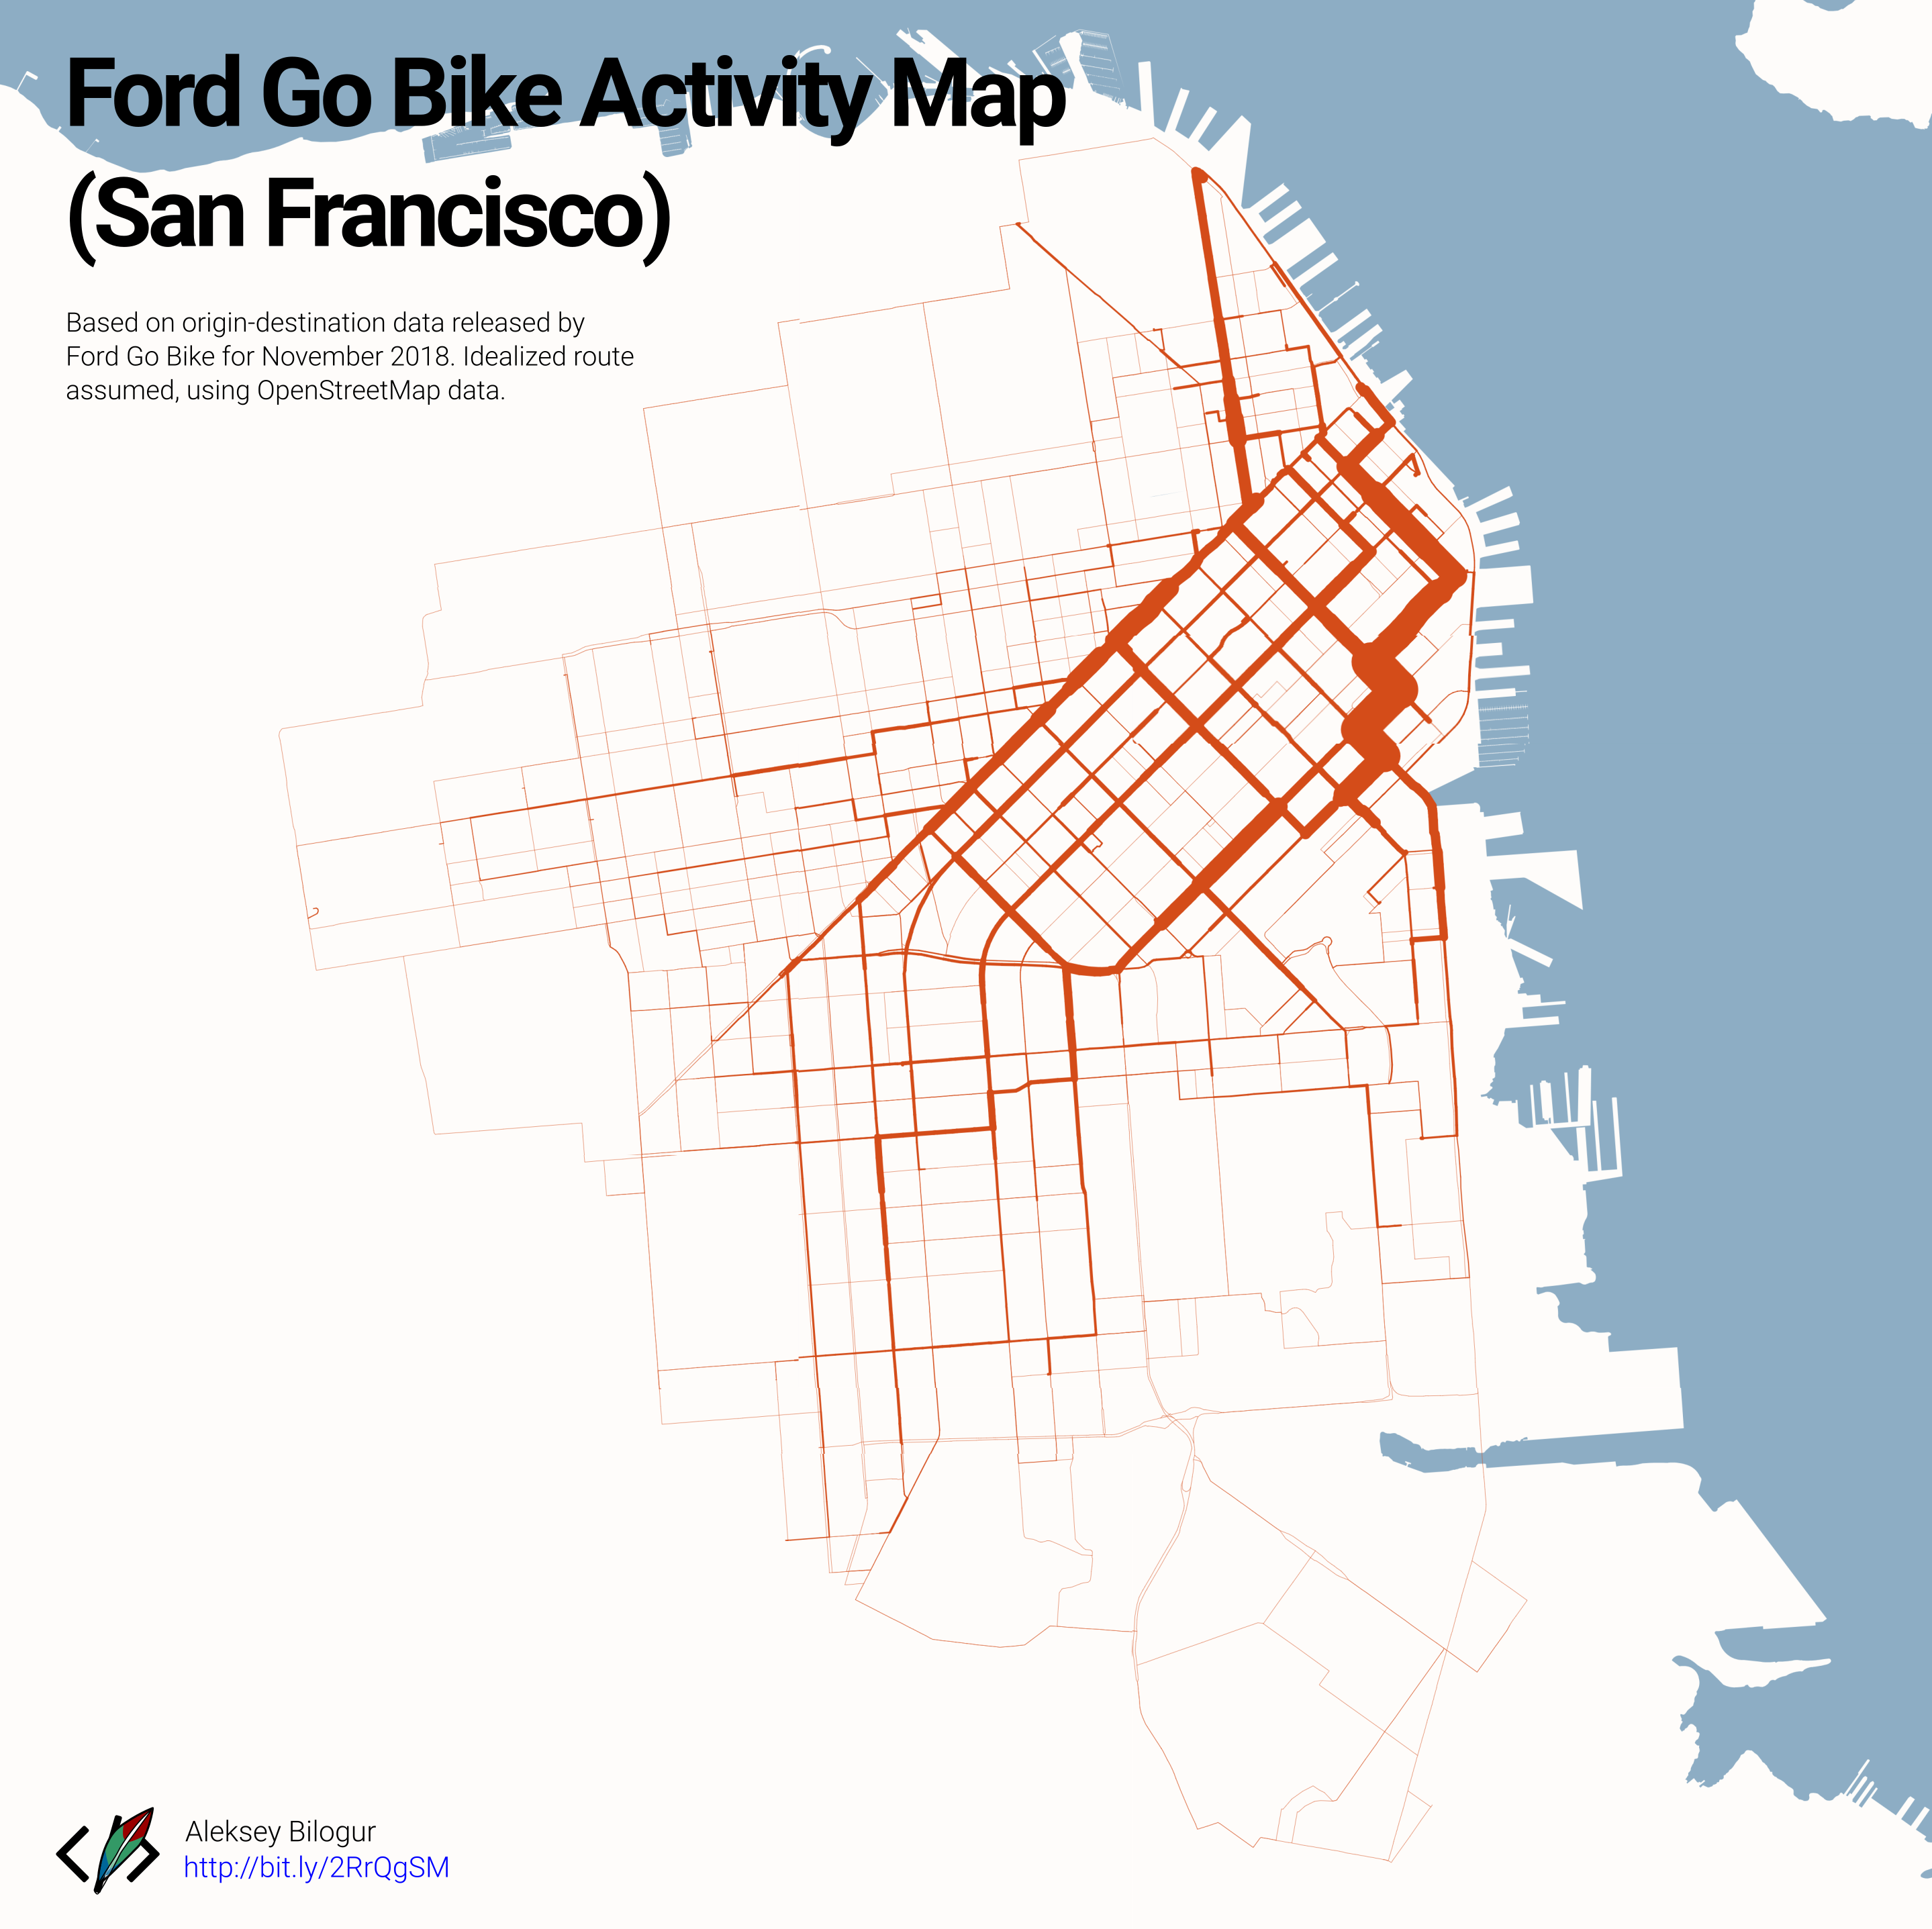 San Francisco Ford Go Bike activity map [OC] : sanfrancisco on silicon valley maps, alcatraz maps, vikings maps, game of thrones maps, revolution maps, the walking dead maps,